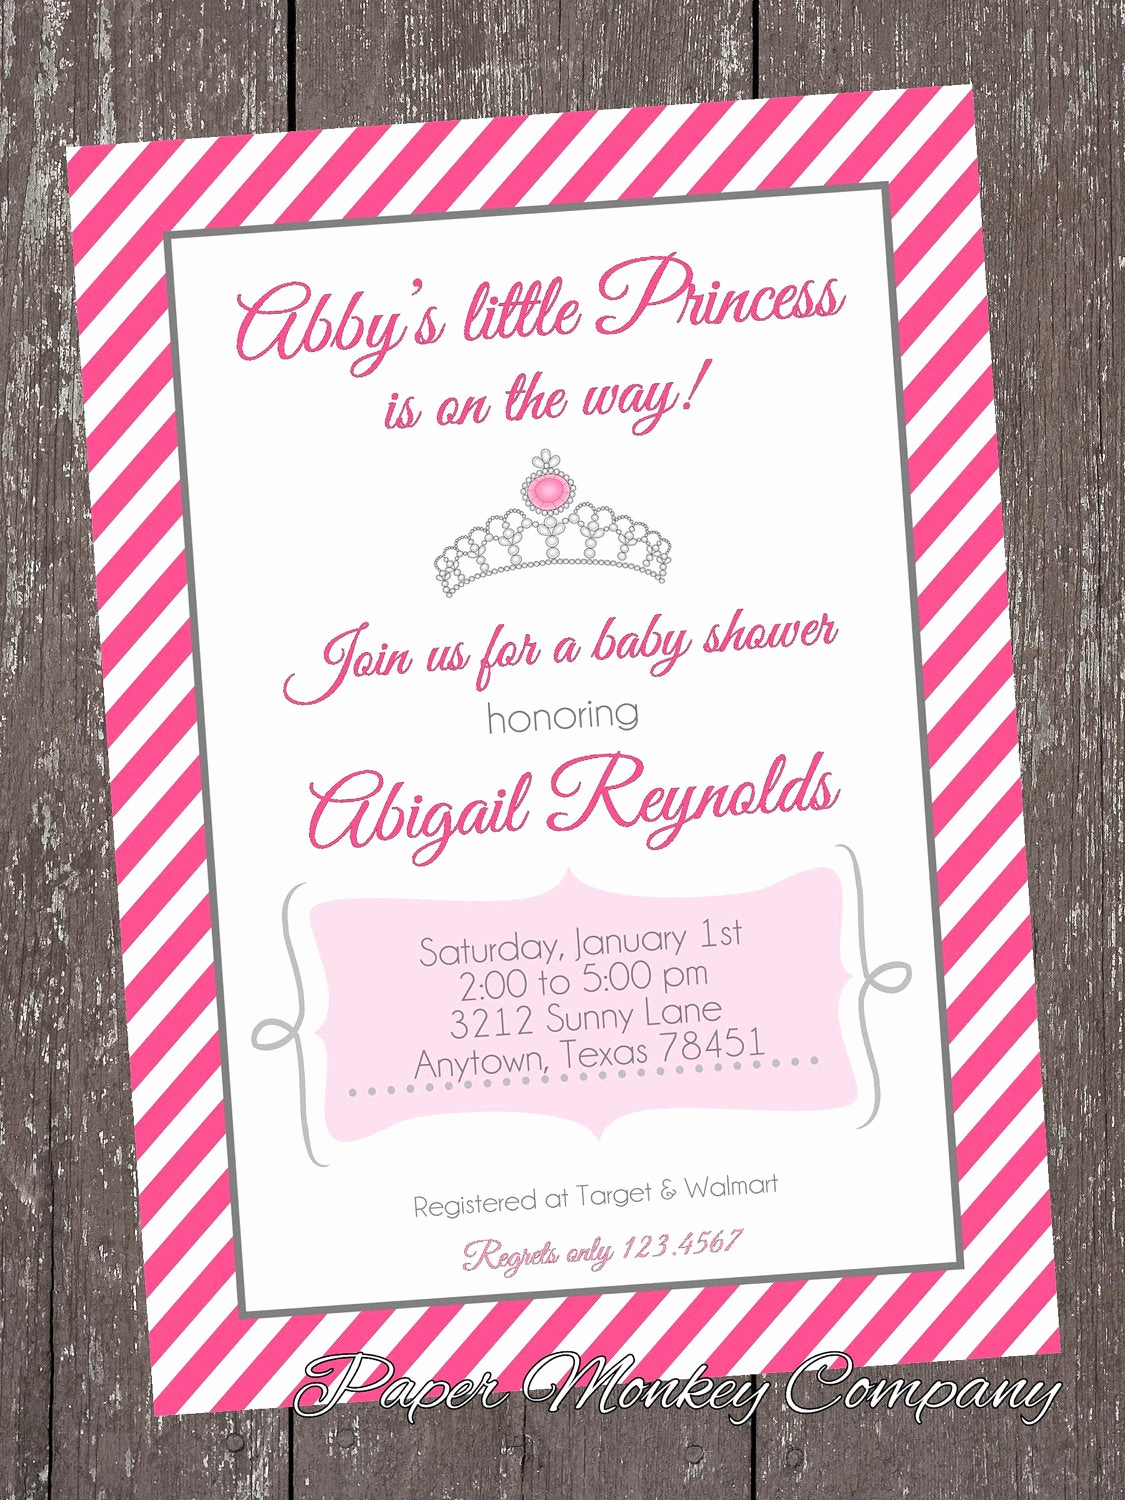 Princess Baby Shower Invitations Awesome Princess Baby Shower Invitations